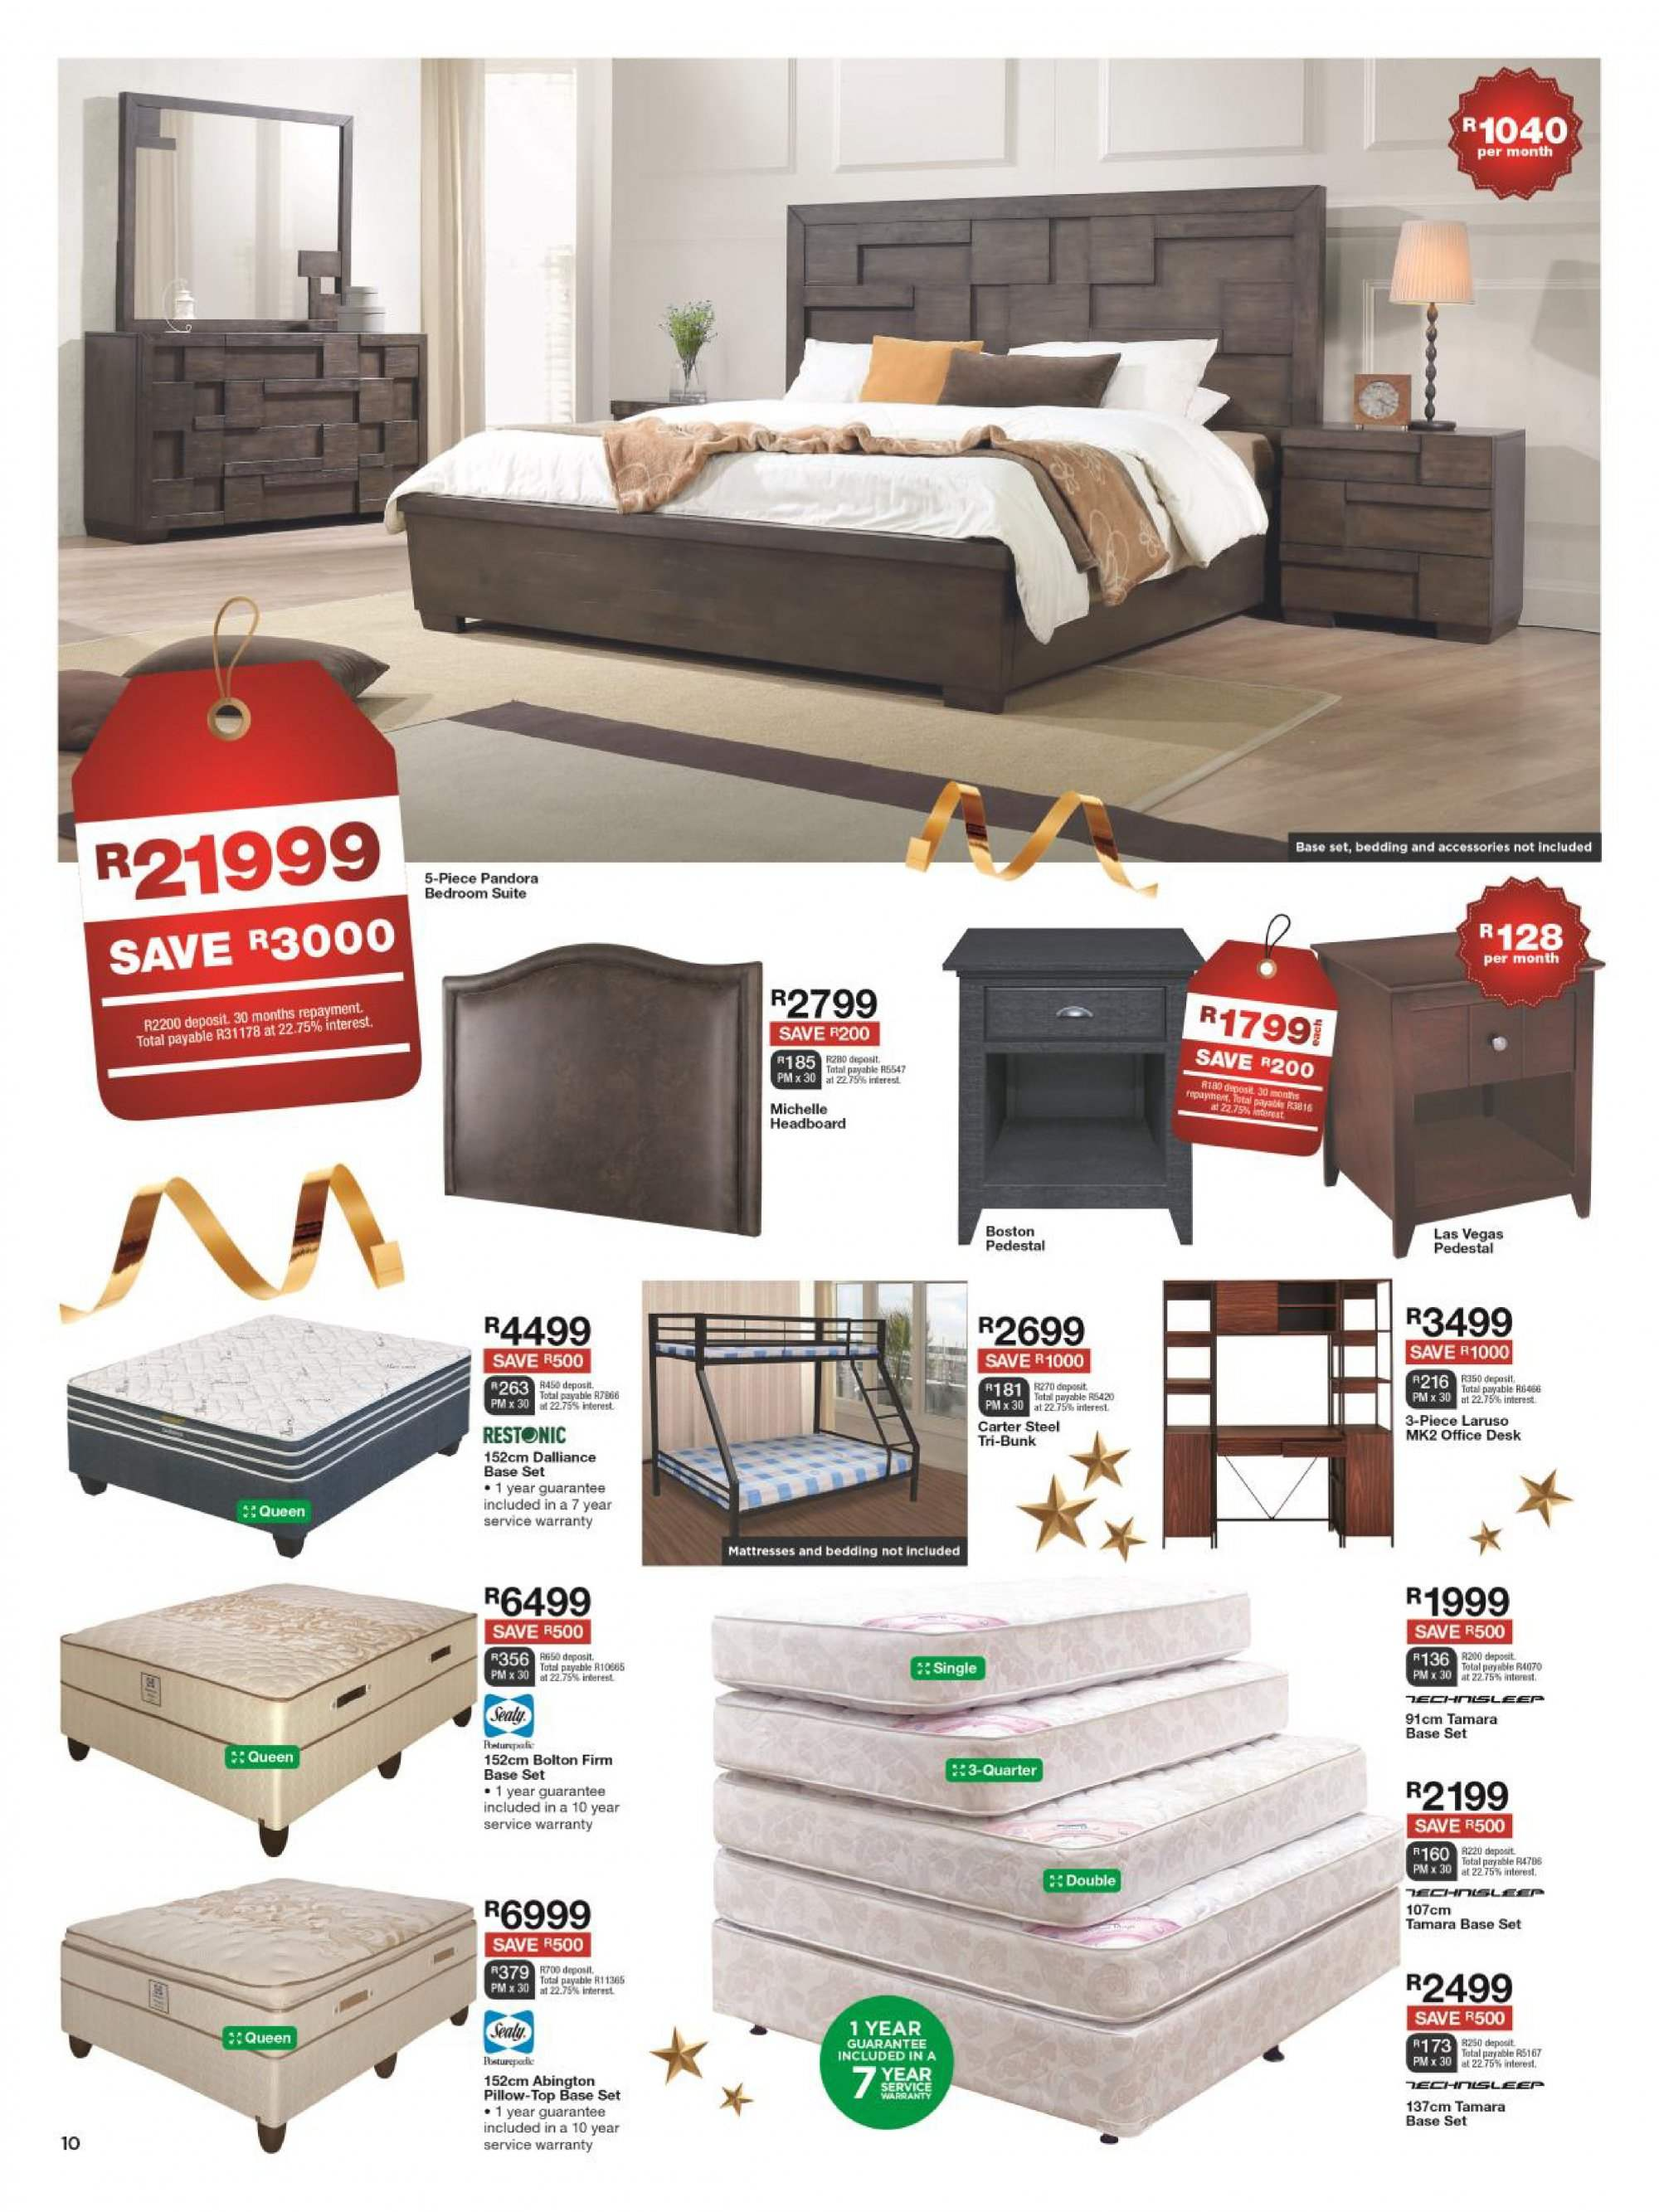 House & Home catalogue  - 12.10.2018 - 12.24.2018. Page 10.